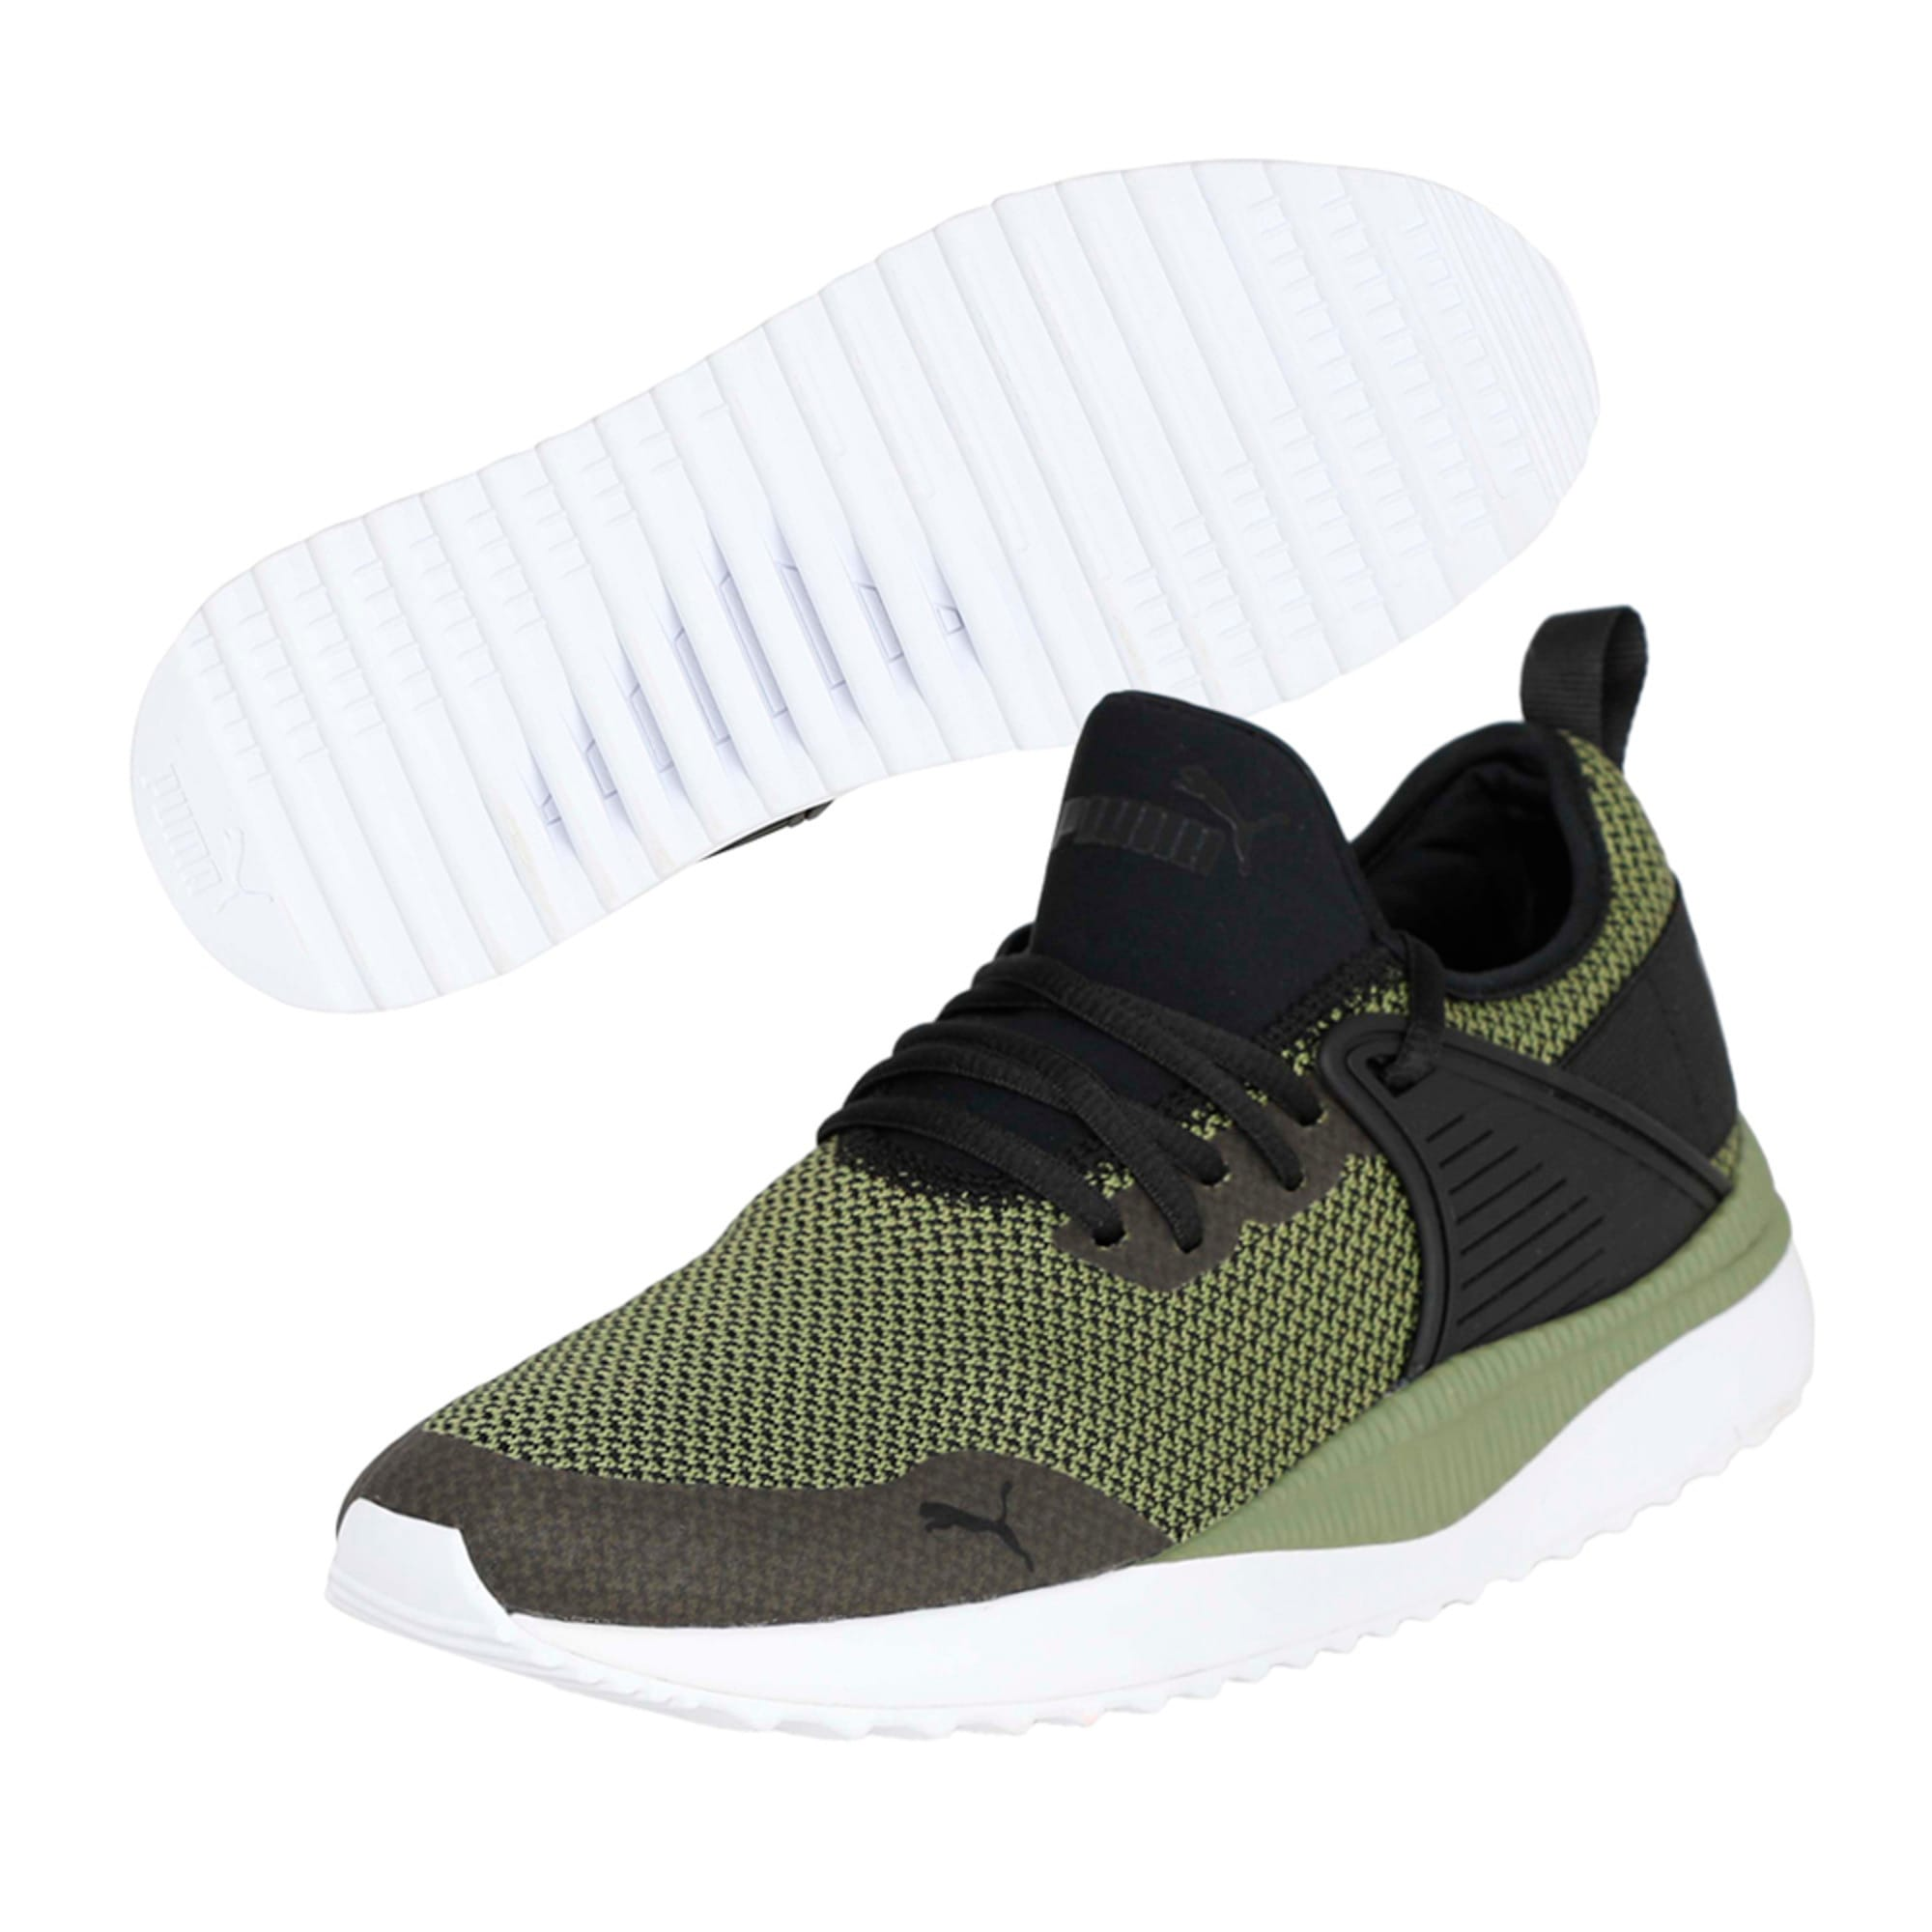 Thumbnail 2 of Pacer Next Cage GK Trainers, Puma Black-Capulet Olive, medium-IND